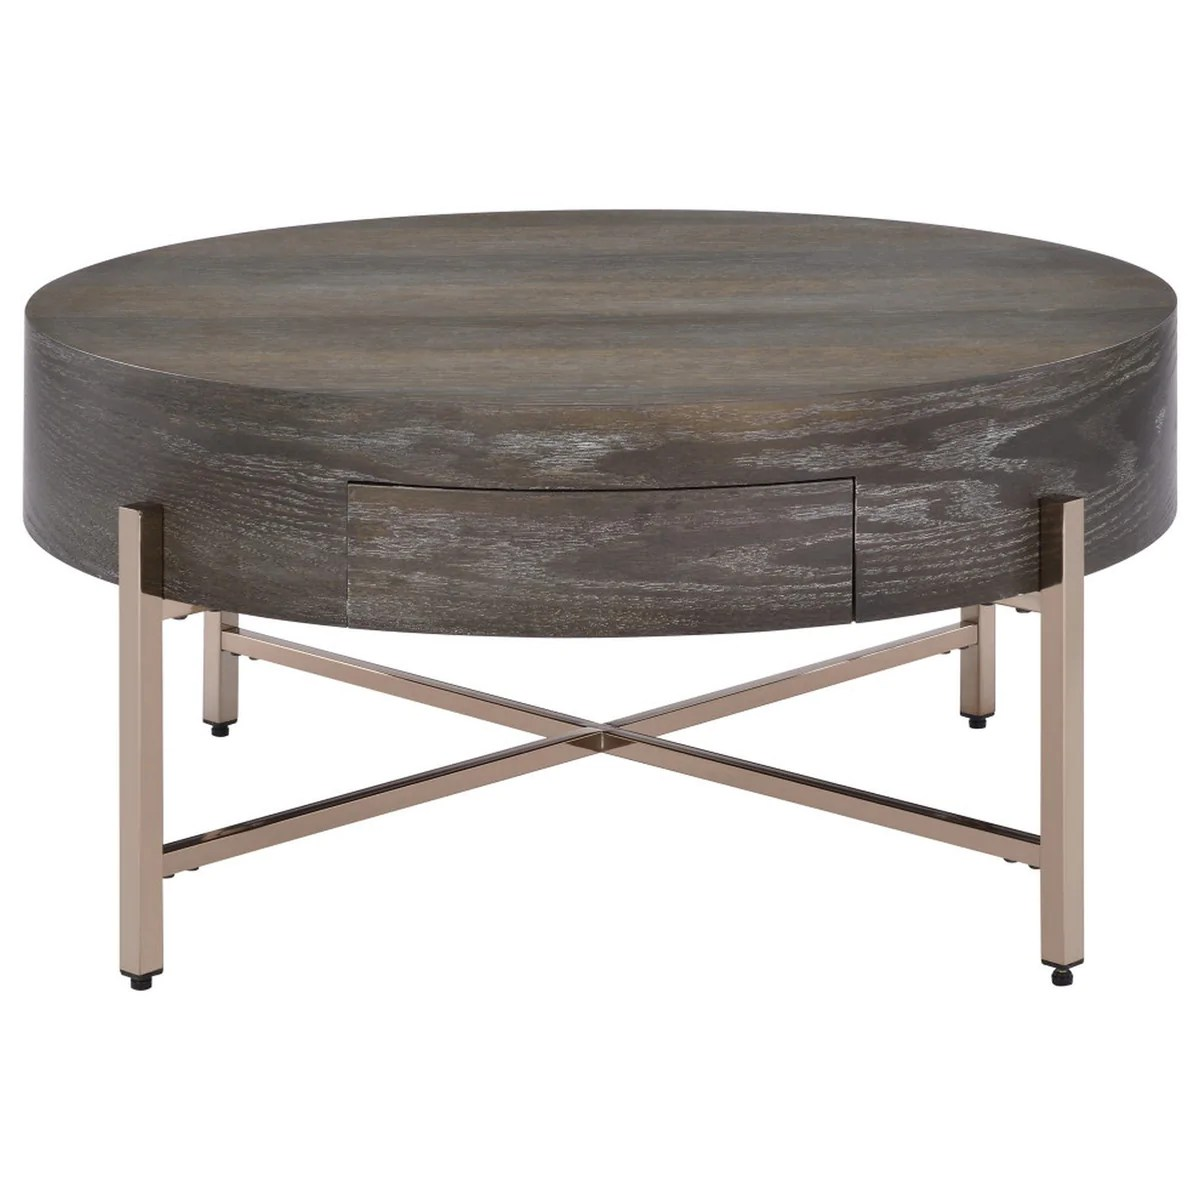 1 drawer round modern coffee table with crossed metal legs brown and gold bm215037